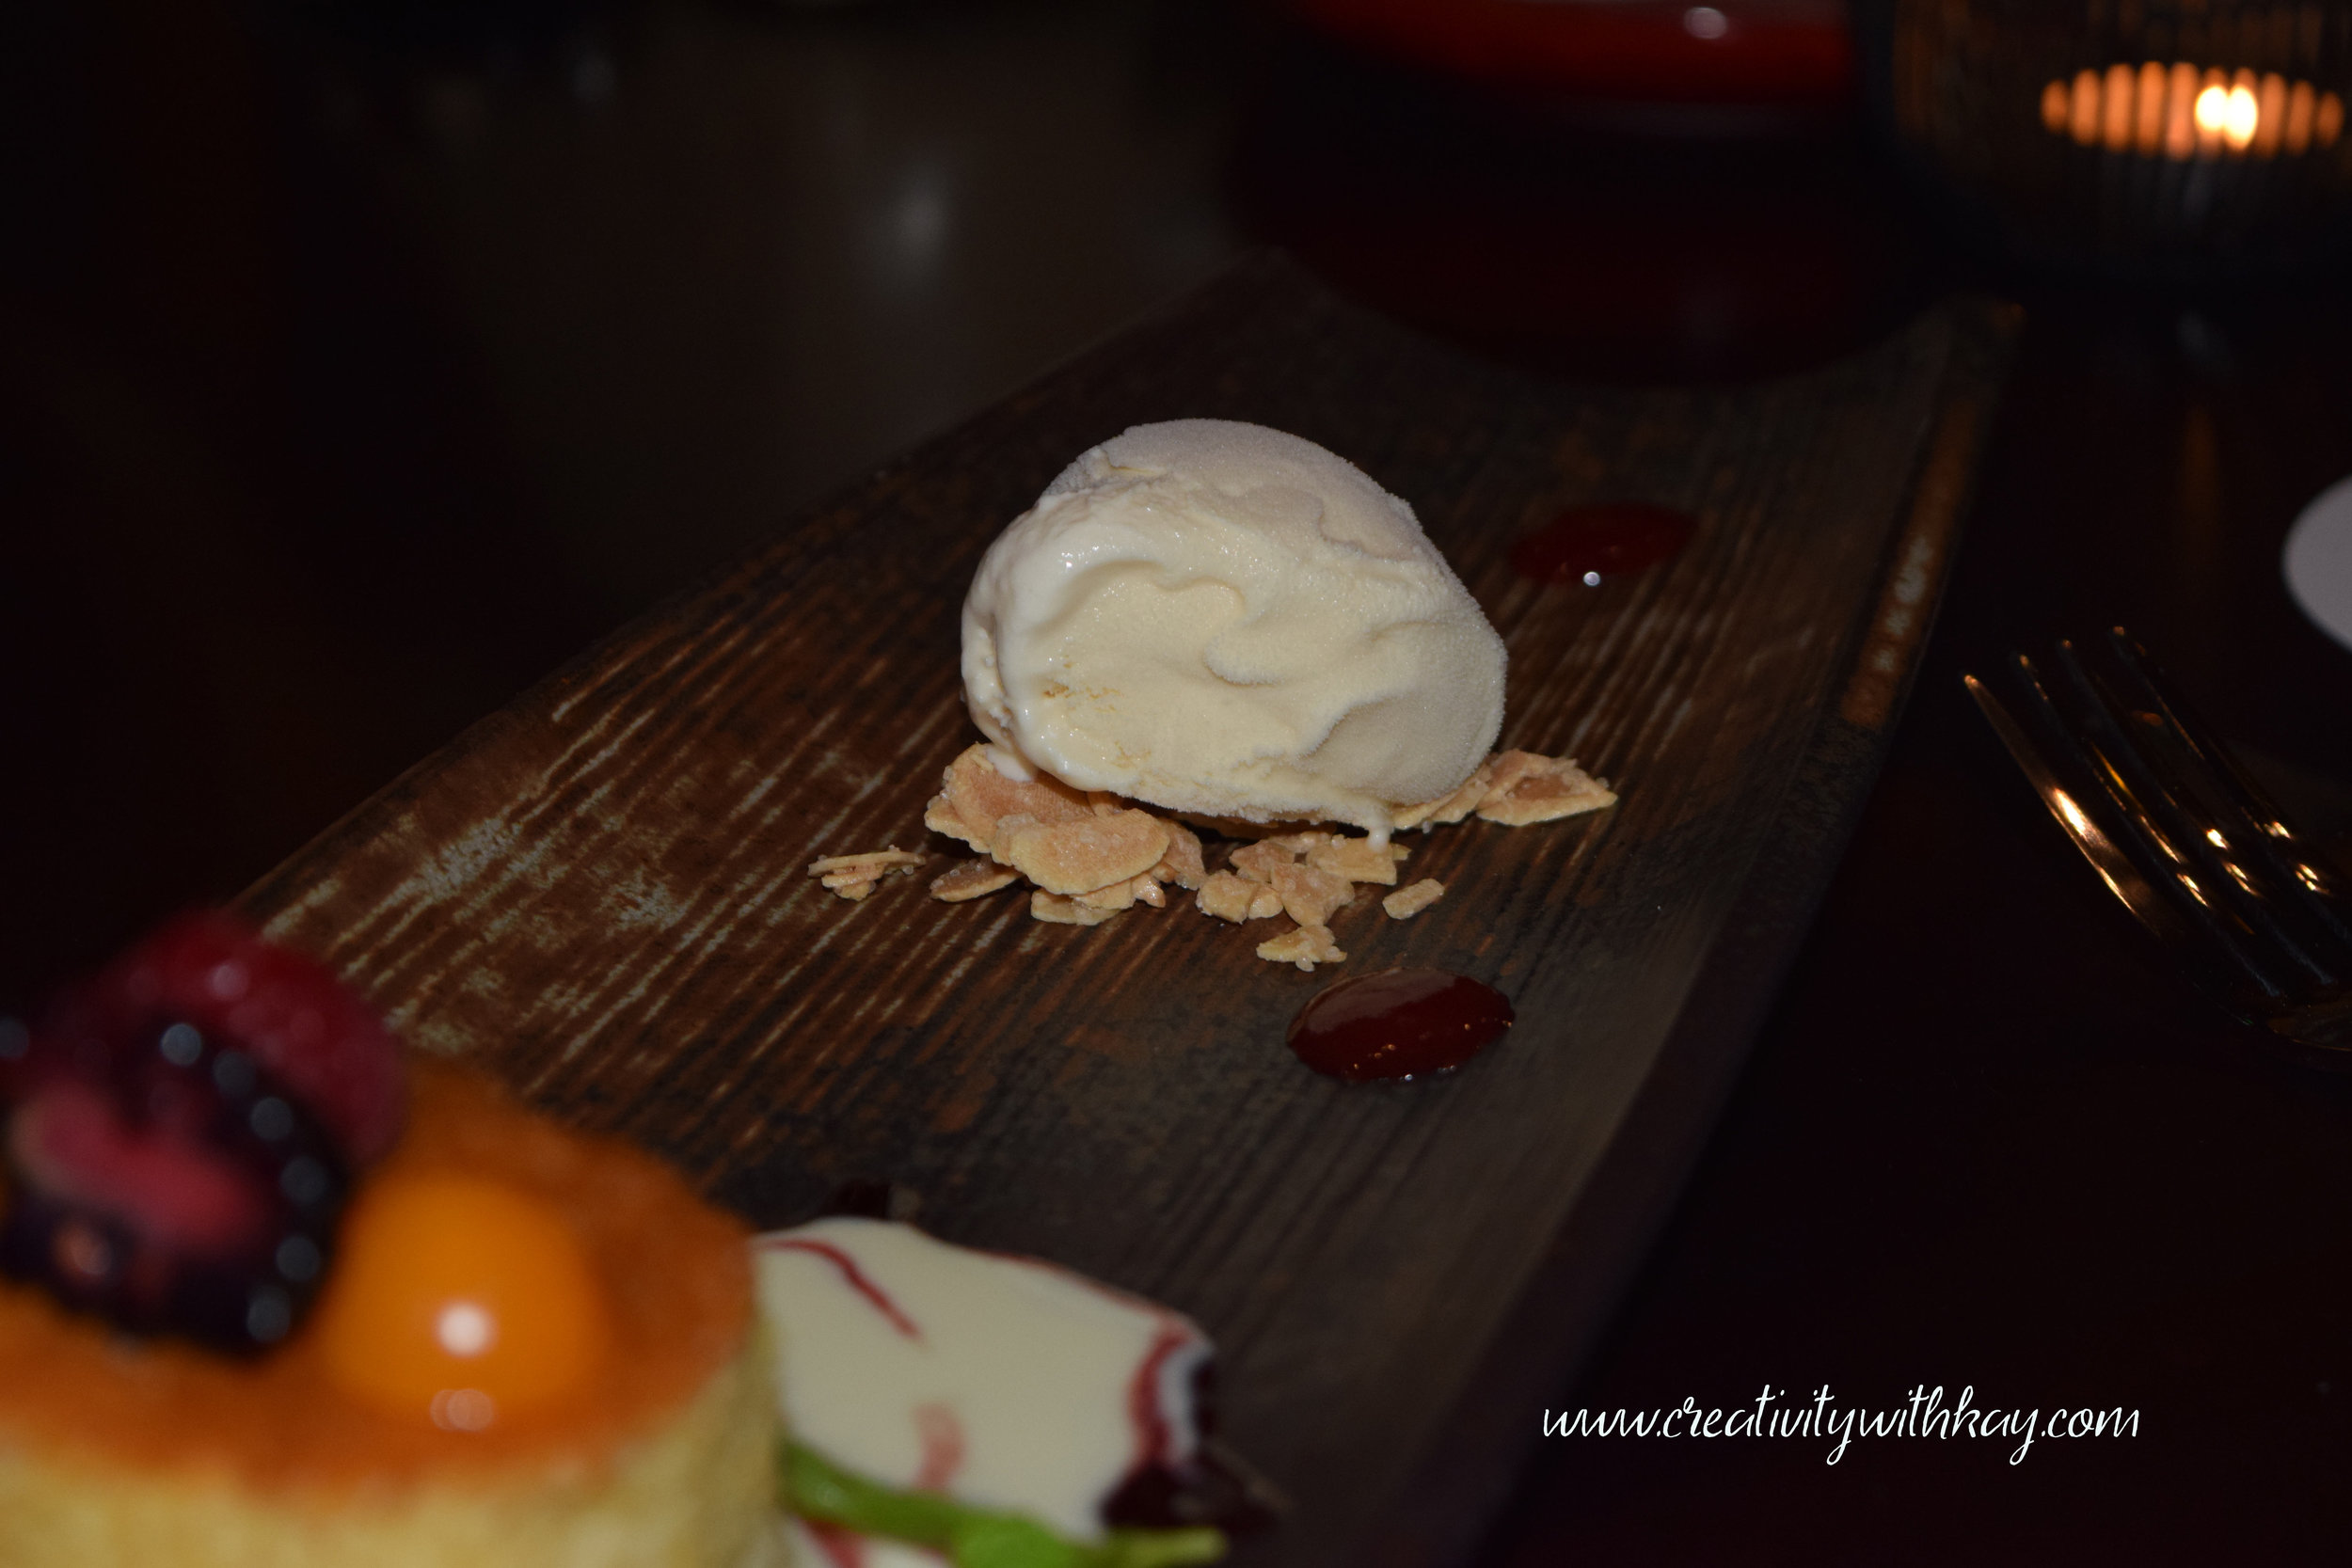 qatarblogger-isla-mexican-cuisine-food-drink-icecream